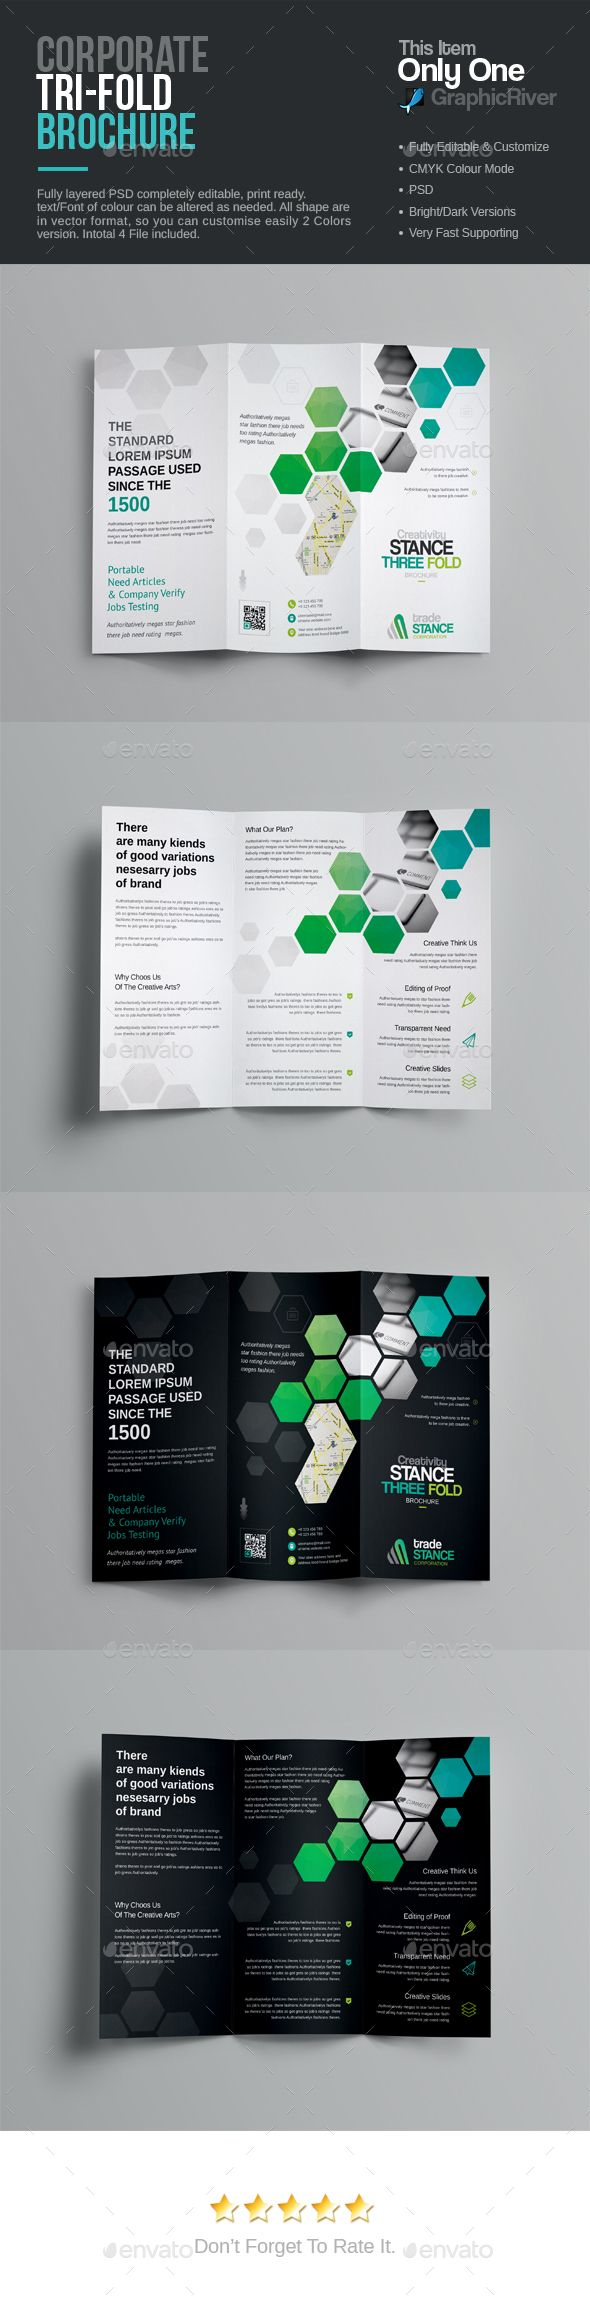 Cool 1 Page Website Template Thick 10 Best Resume Writers Shaped 100 Square Pool Template 1099 Employee Contract Template Youthful 2 Column Notes Template Blue2 Page Resume Format Doc 420 Best Images About Leaflet Design(World) On Pinterest ..